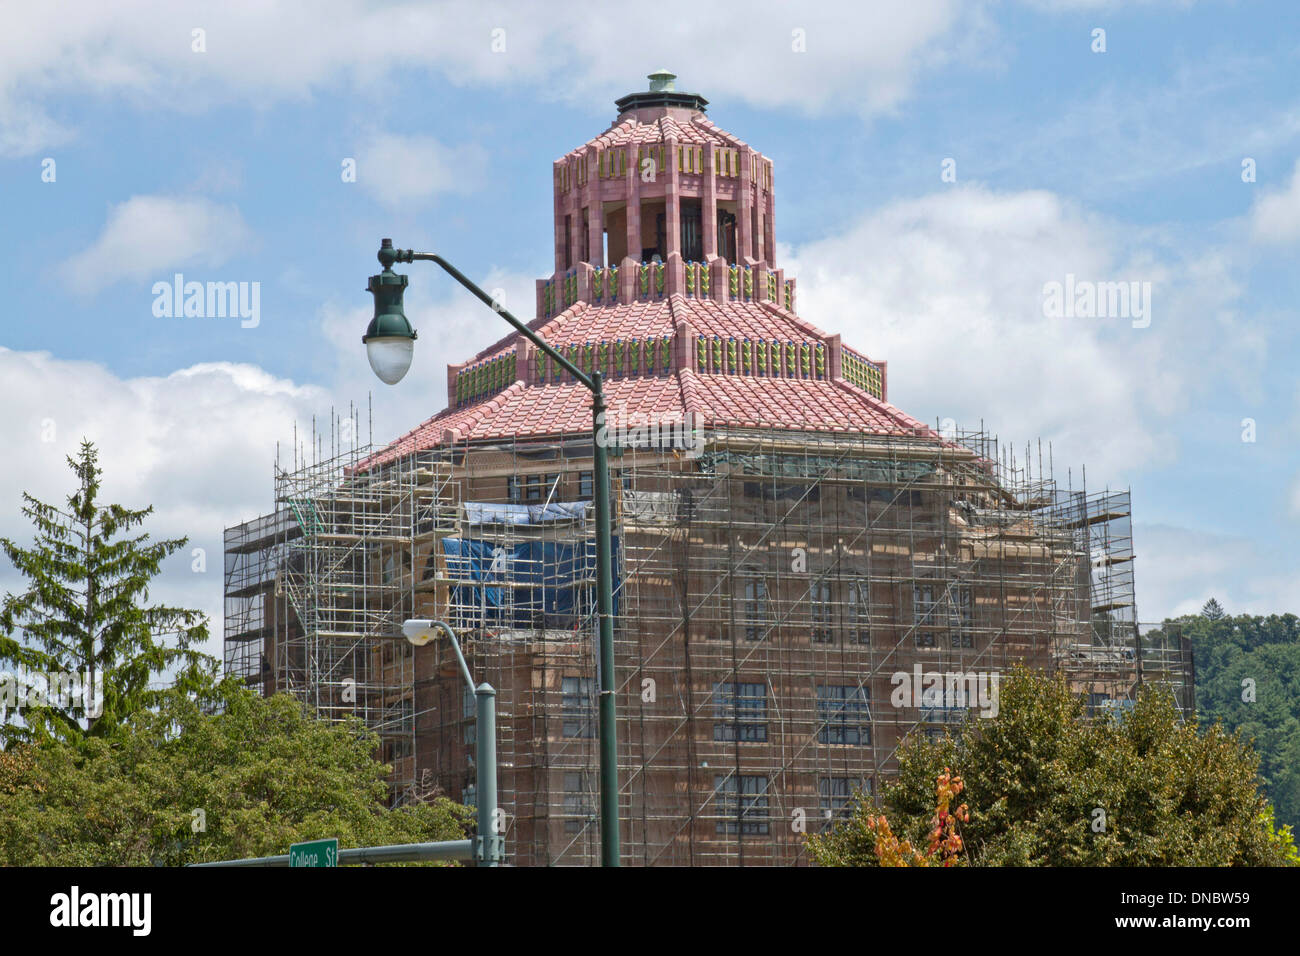 Downtown Asheville City Hall building under rennovation is bristling with construction scaffolding - Stock Image